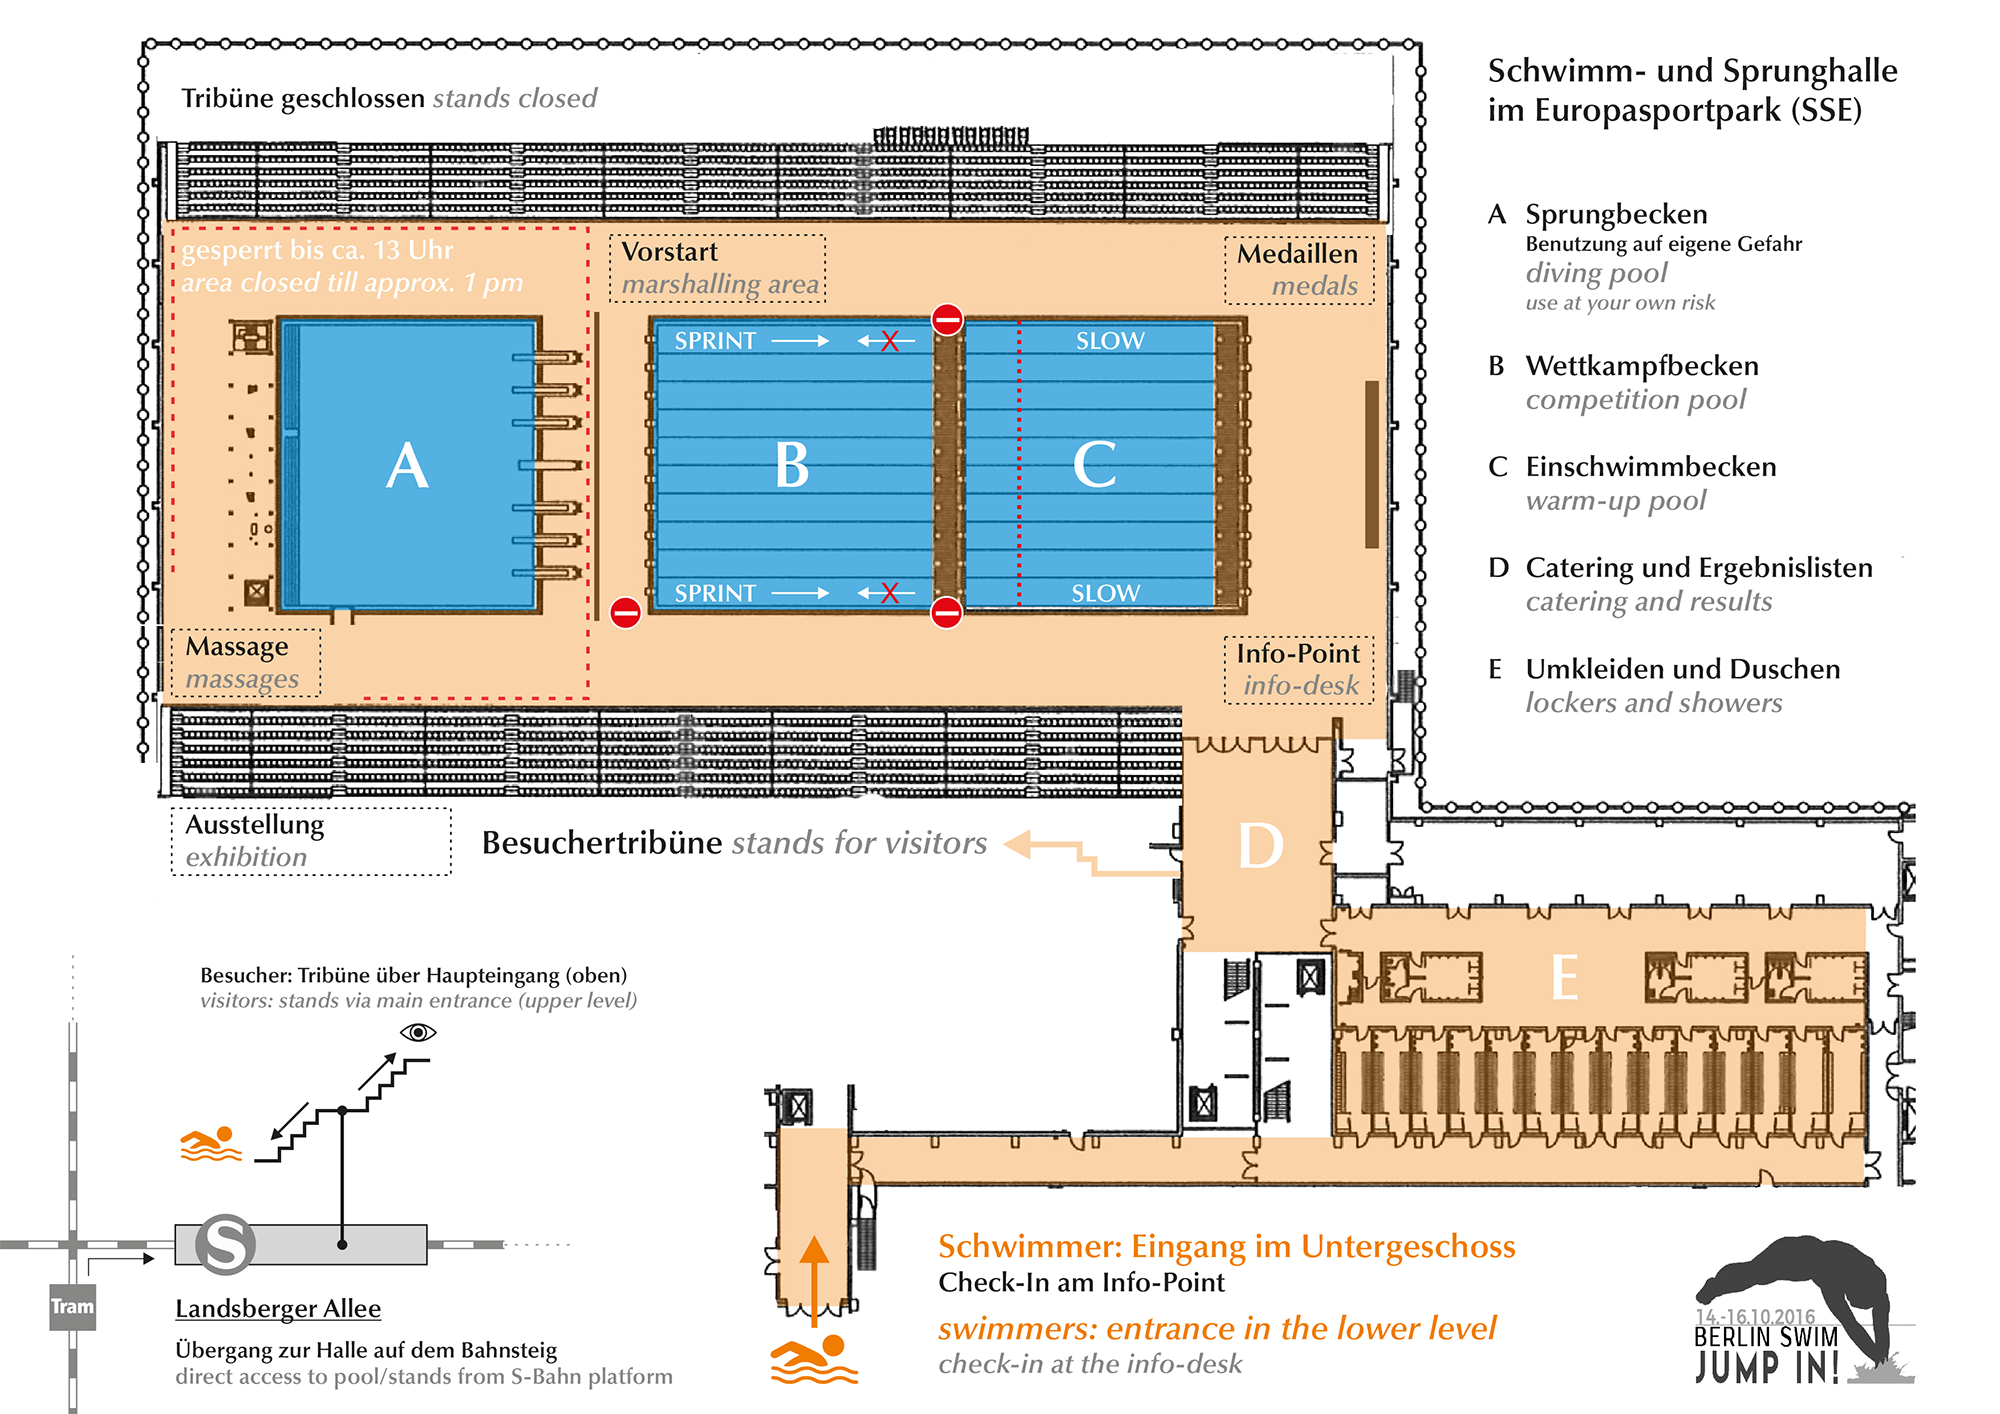 the competition pool measures 50m x 25m alongside a diving pool and is equipped with a sound system for synchronized swimming - Olympic Swimming Pool Diagram